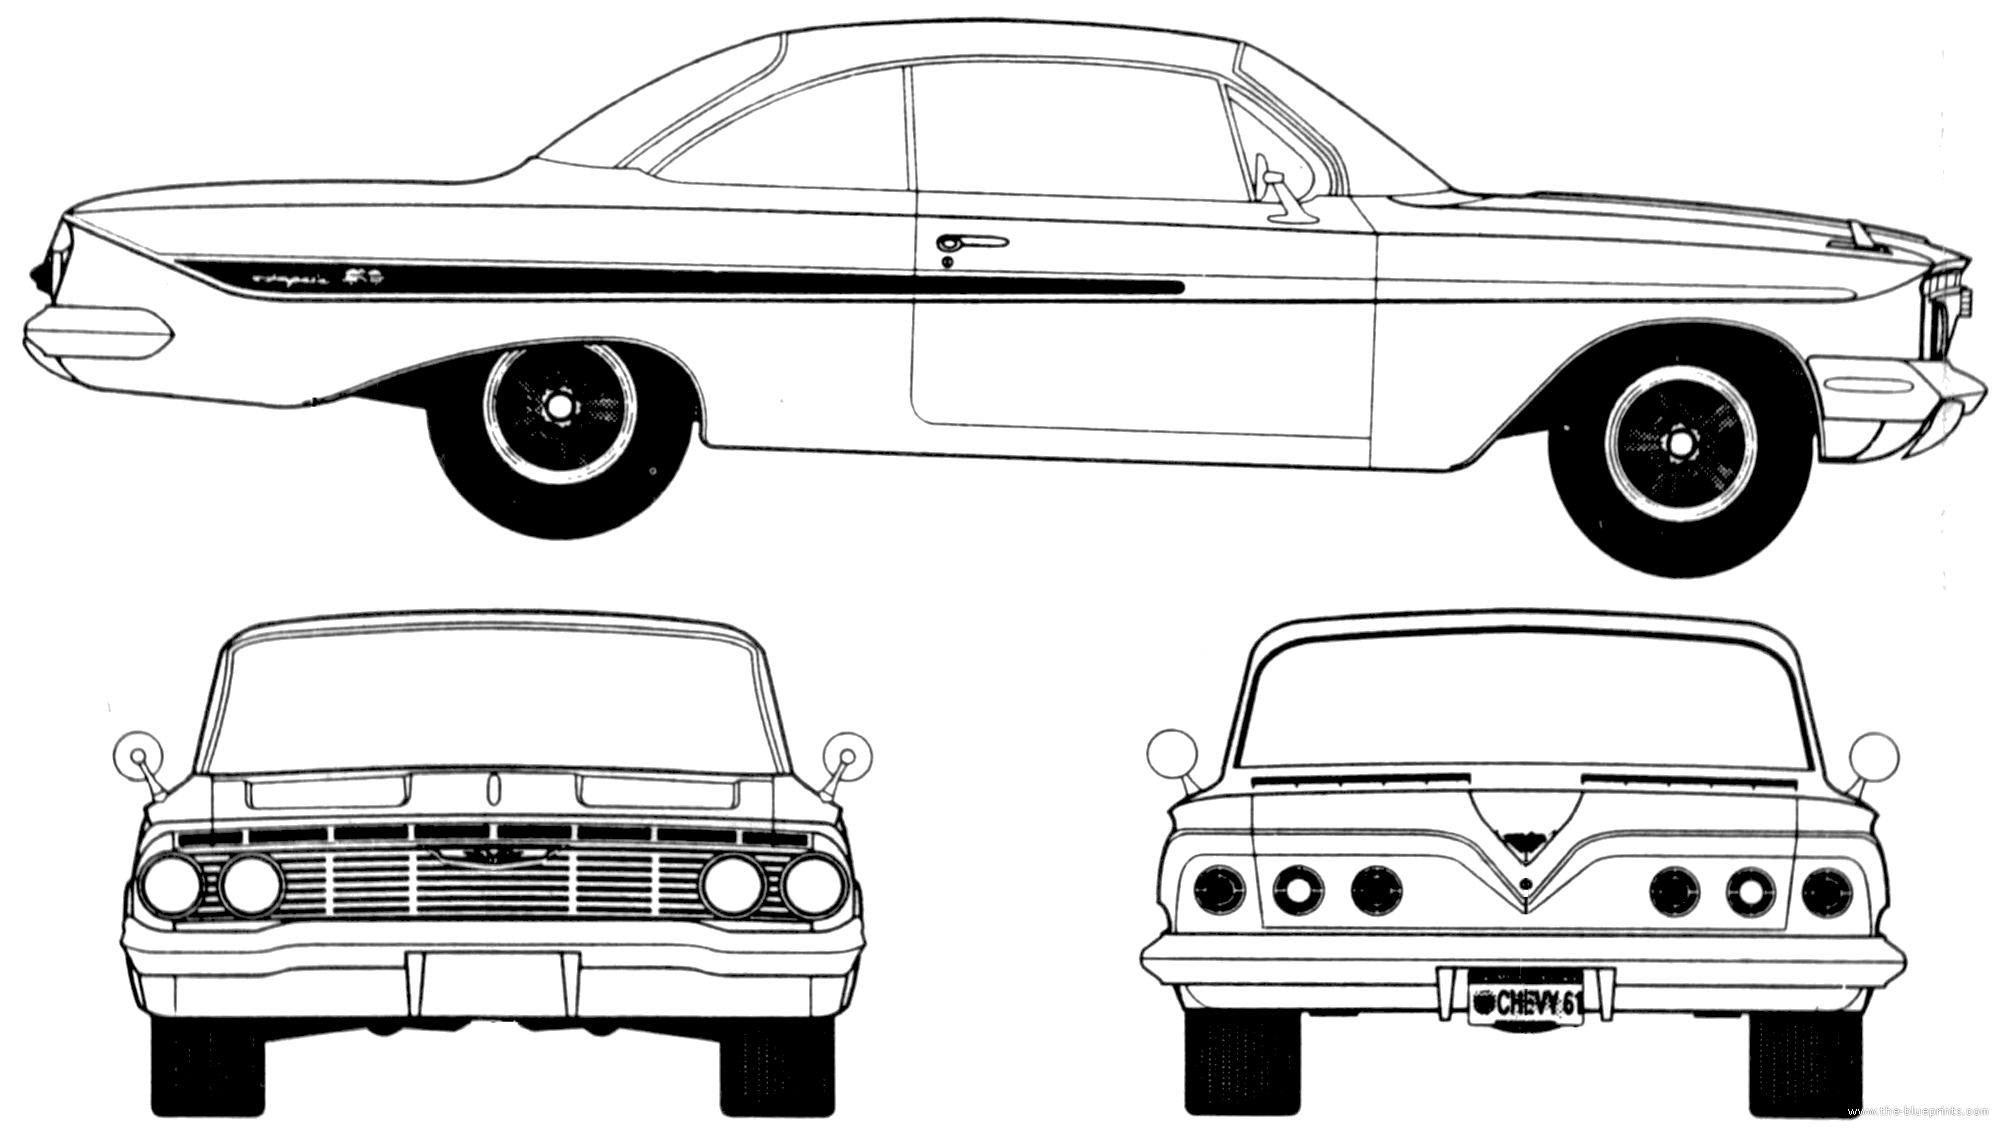 Floss Coloring Page besides  moreover  additionally Recent further Estadao Facebook. on 1959 impala lowrider